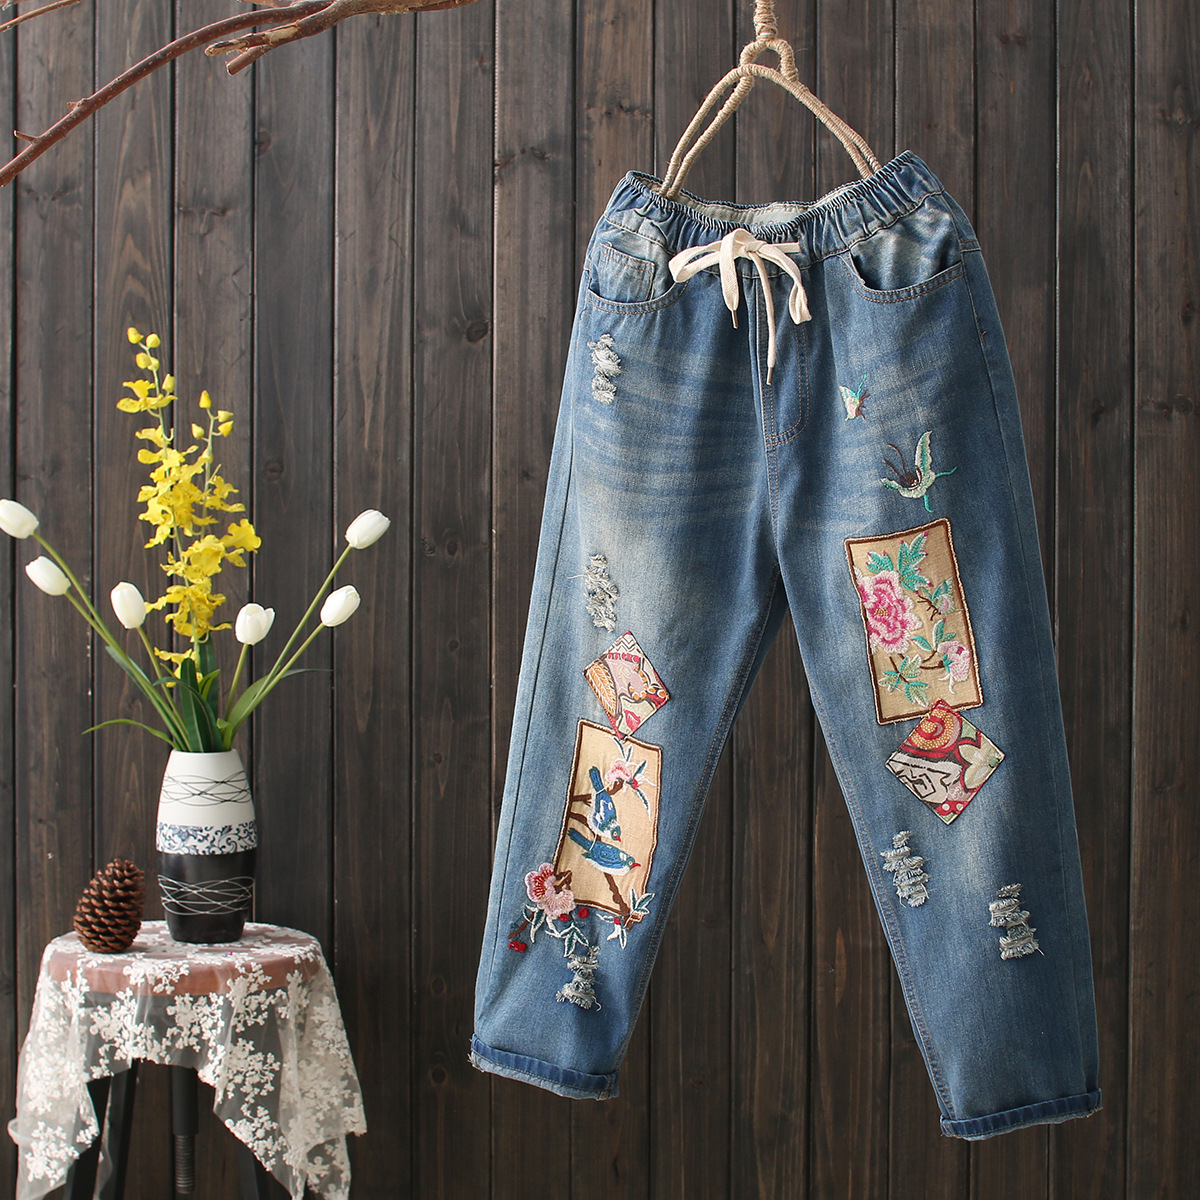 National Wind Embroidery Patch Holes In Jeans Wear White Cotton Retro Literary Elastic Waist Female Harem Pants national wind embroidery lace up neck dress